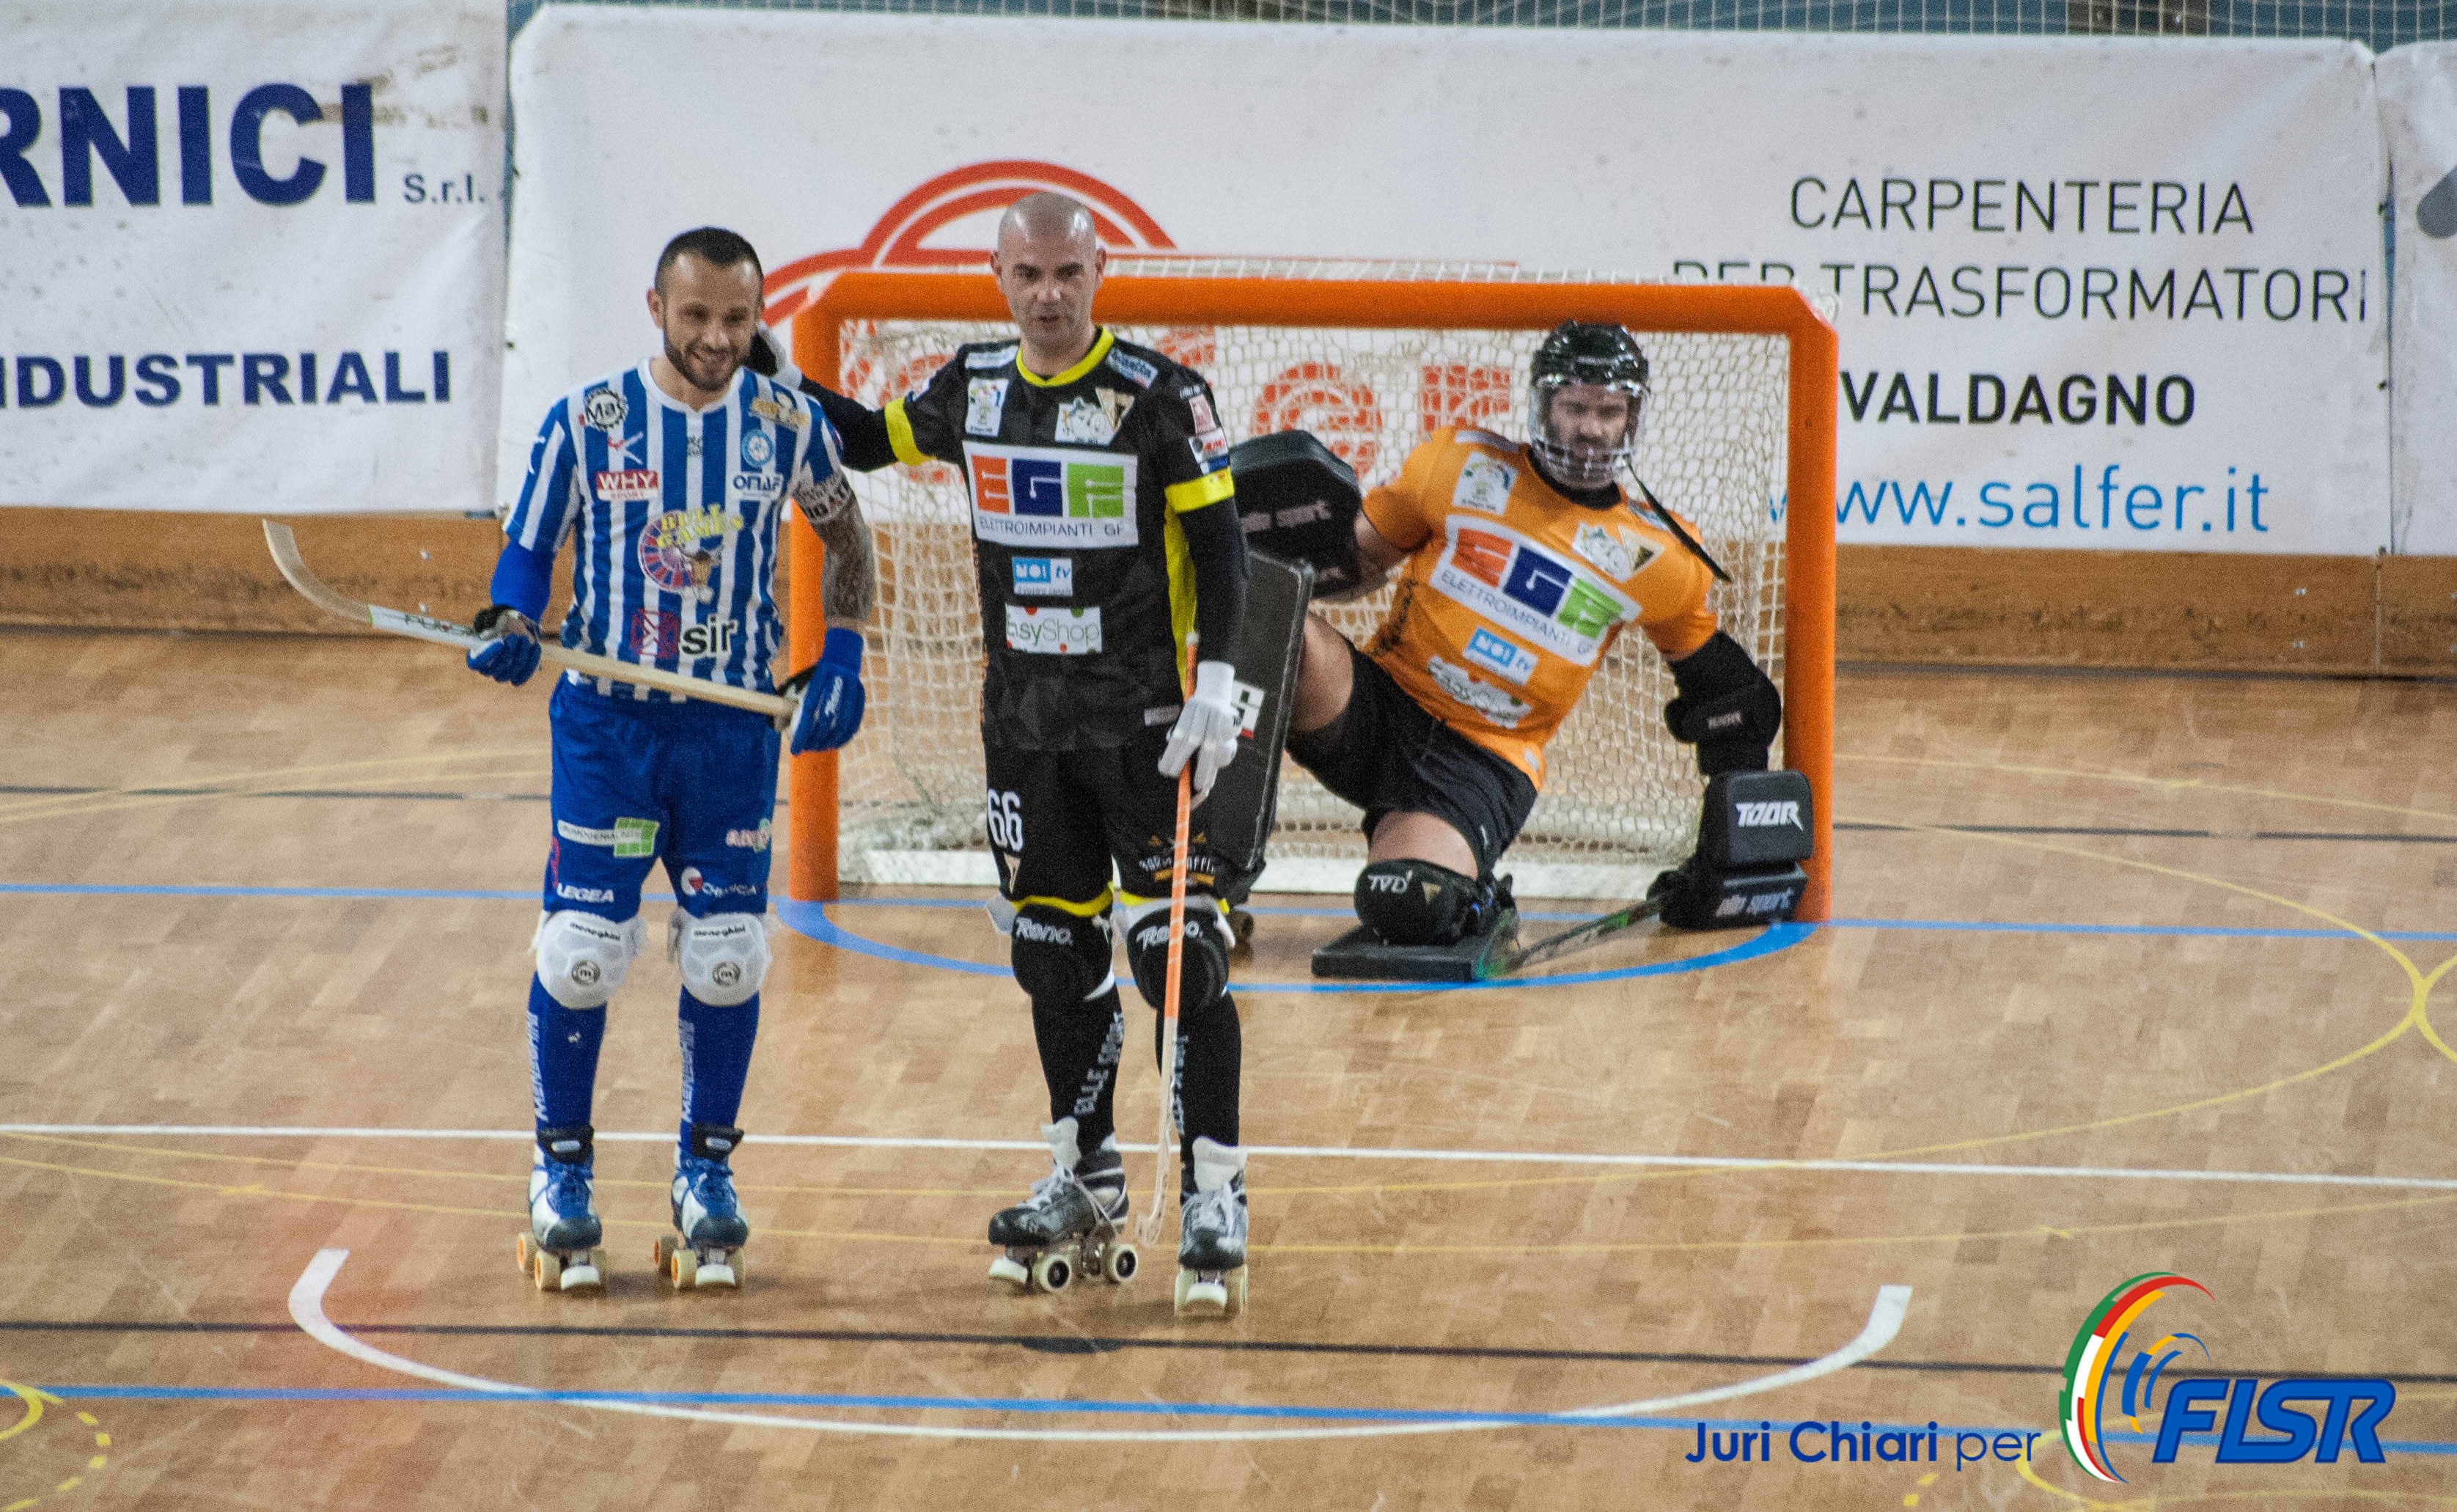 PHOTOS – 16/03/2018 - WS EUROPE CUP - Valdagno (IT) x Viareggio (IT)